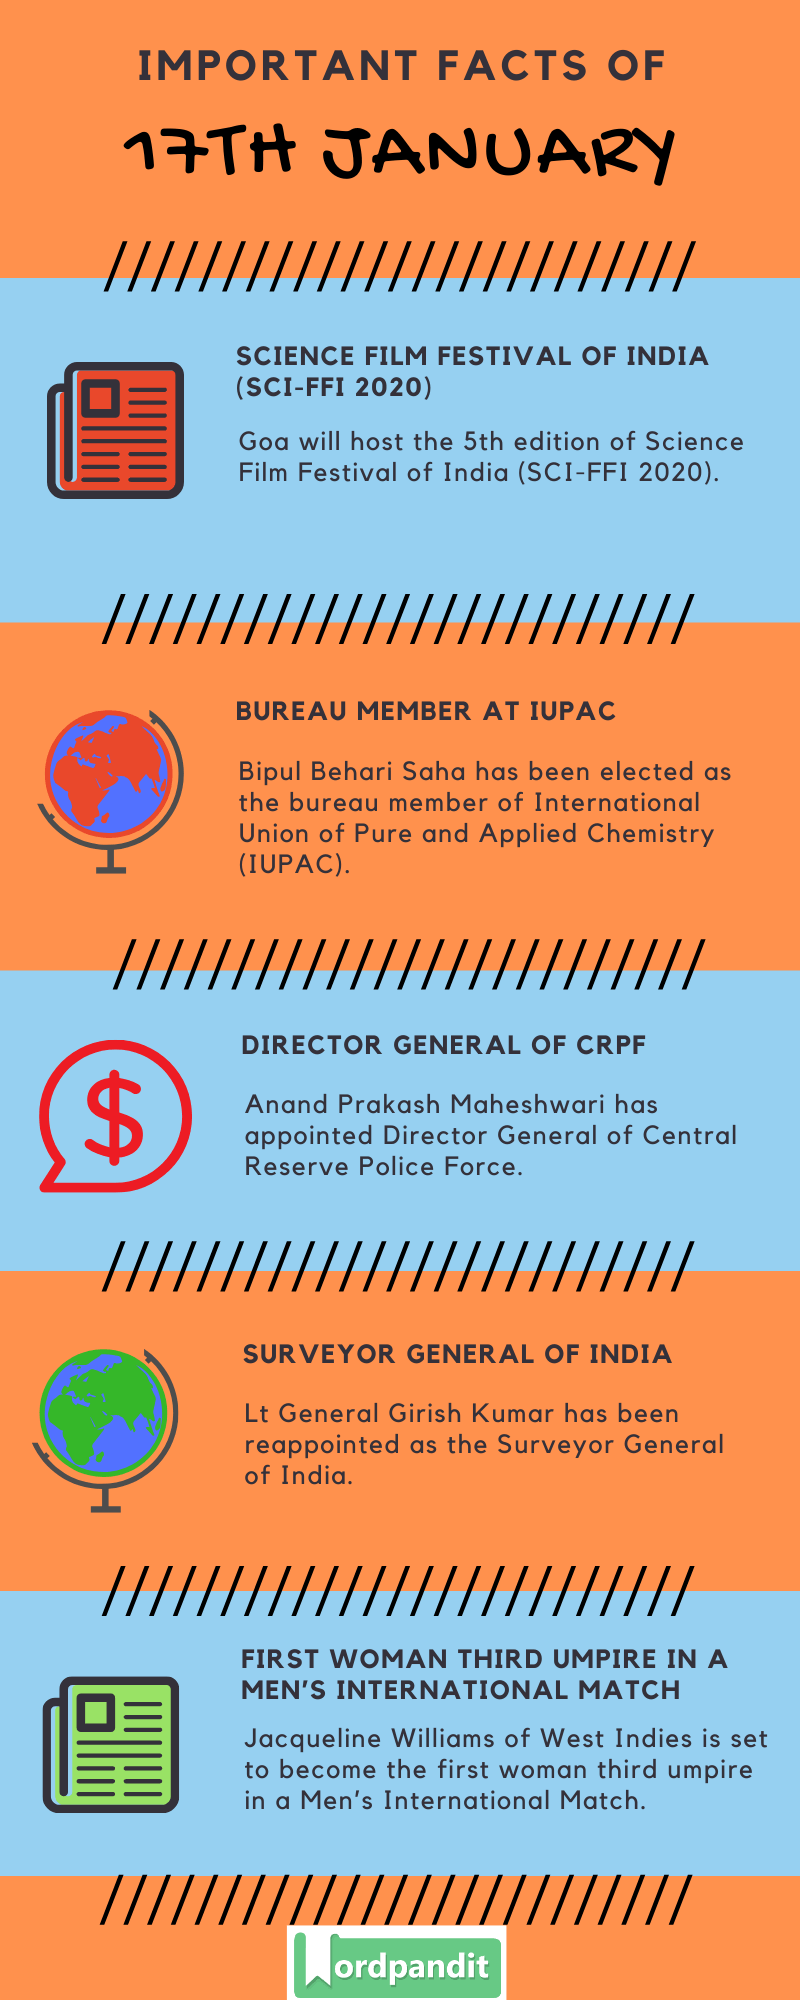 Daily Current Affairs 17 January 2020 Current Affairs Quiz 17 January 2020 Current Affairs Infographic